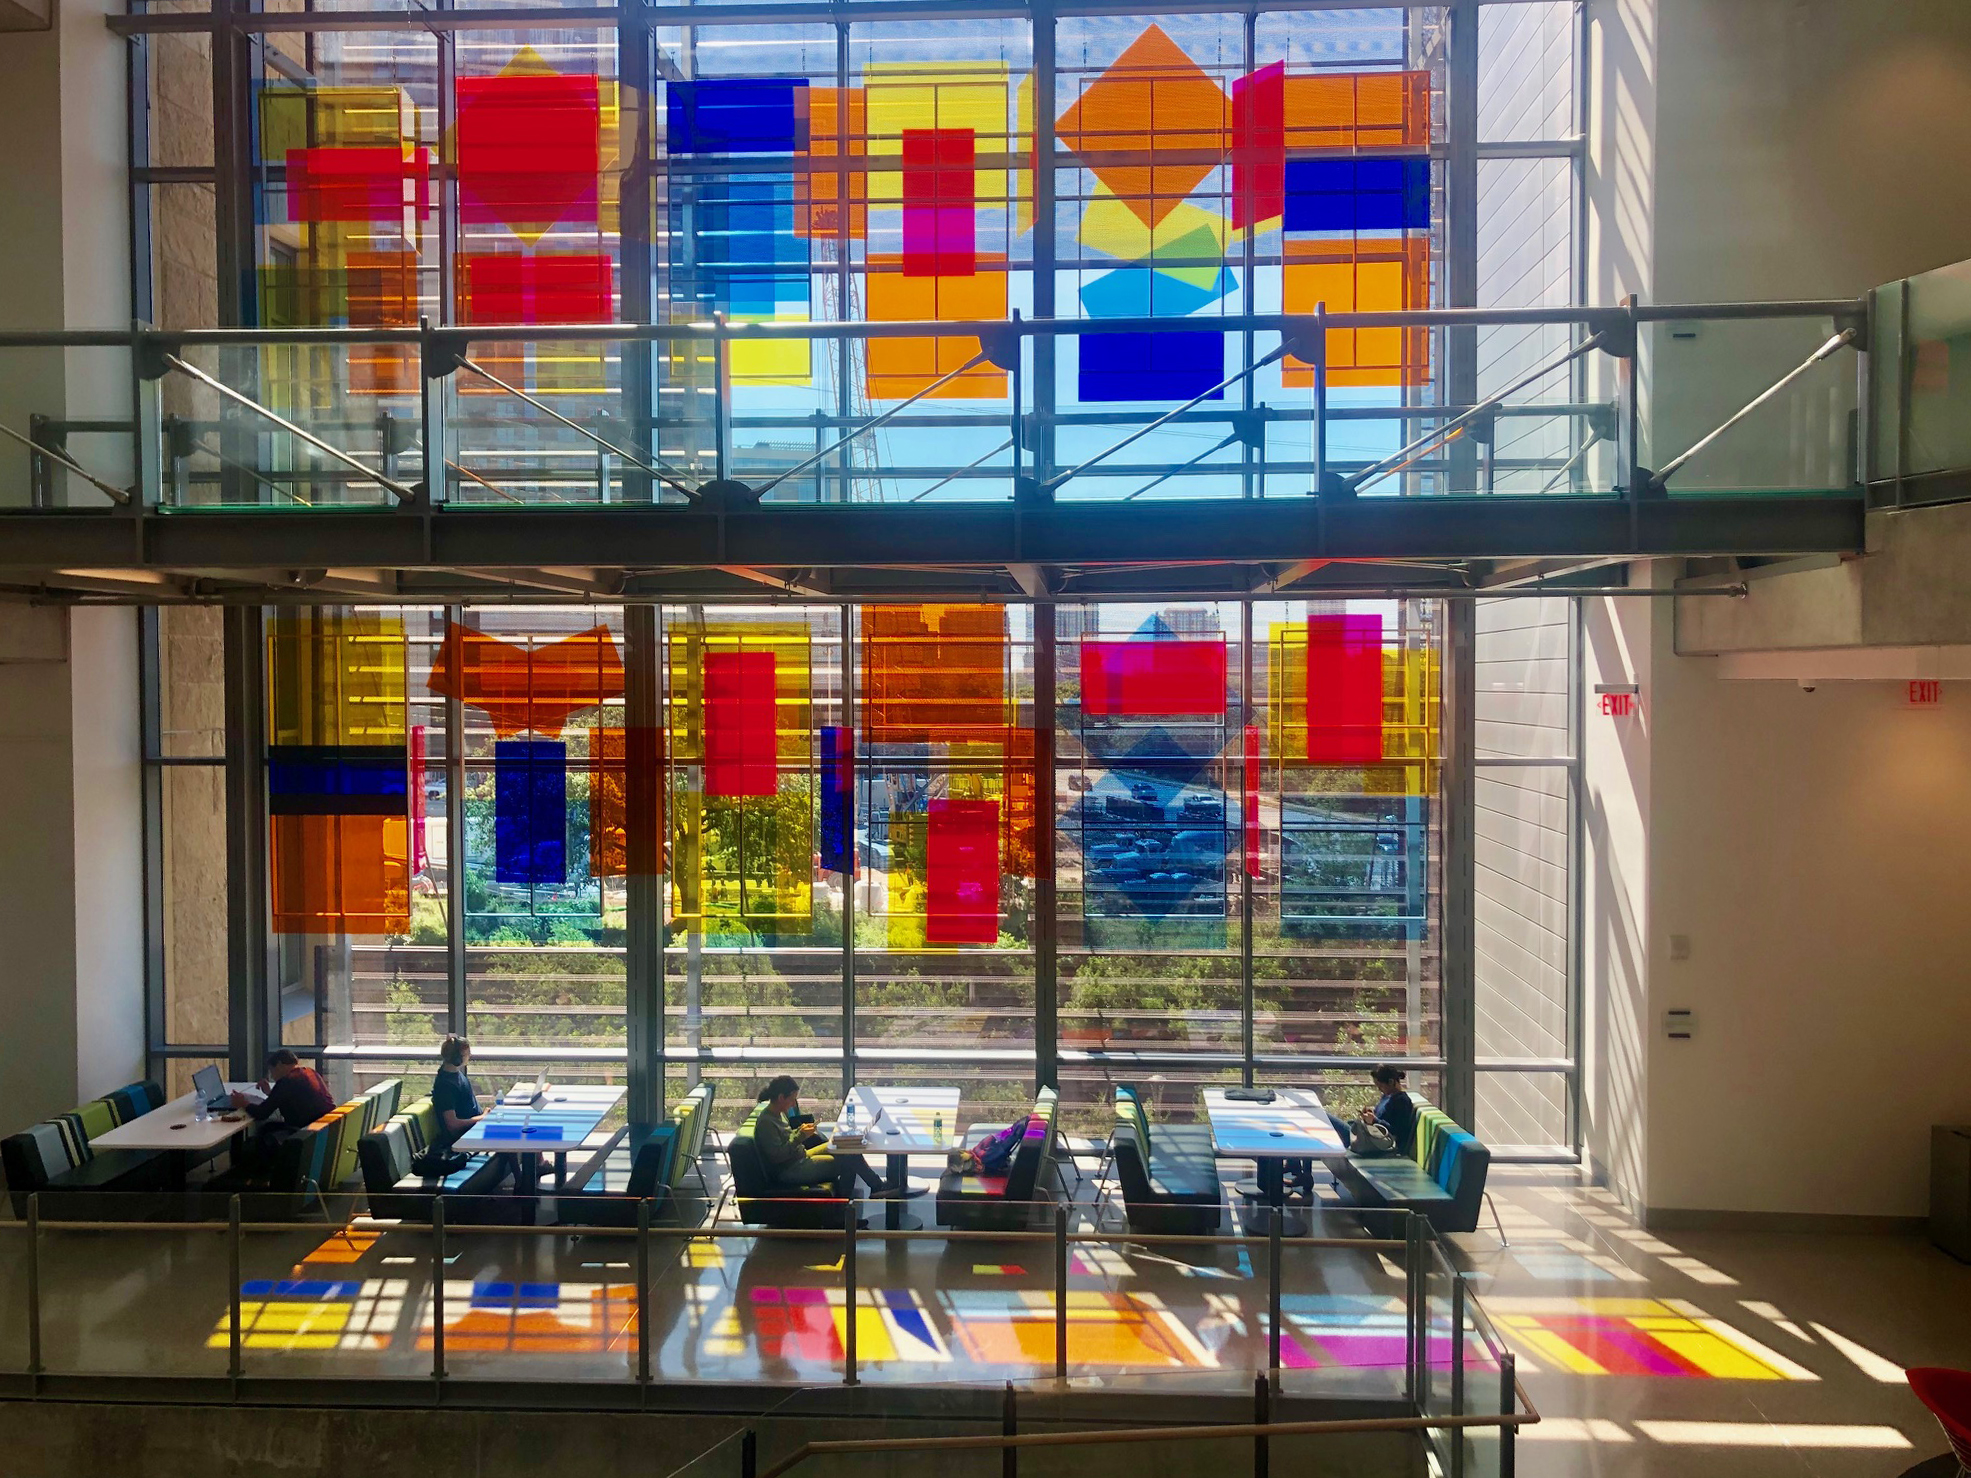 2-Story Window Installation at Austin Central Library